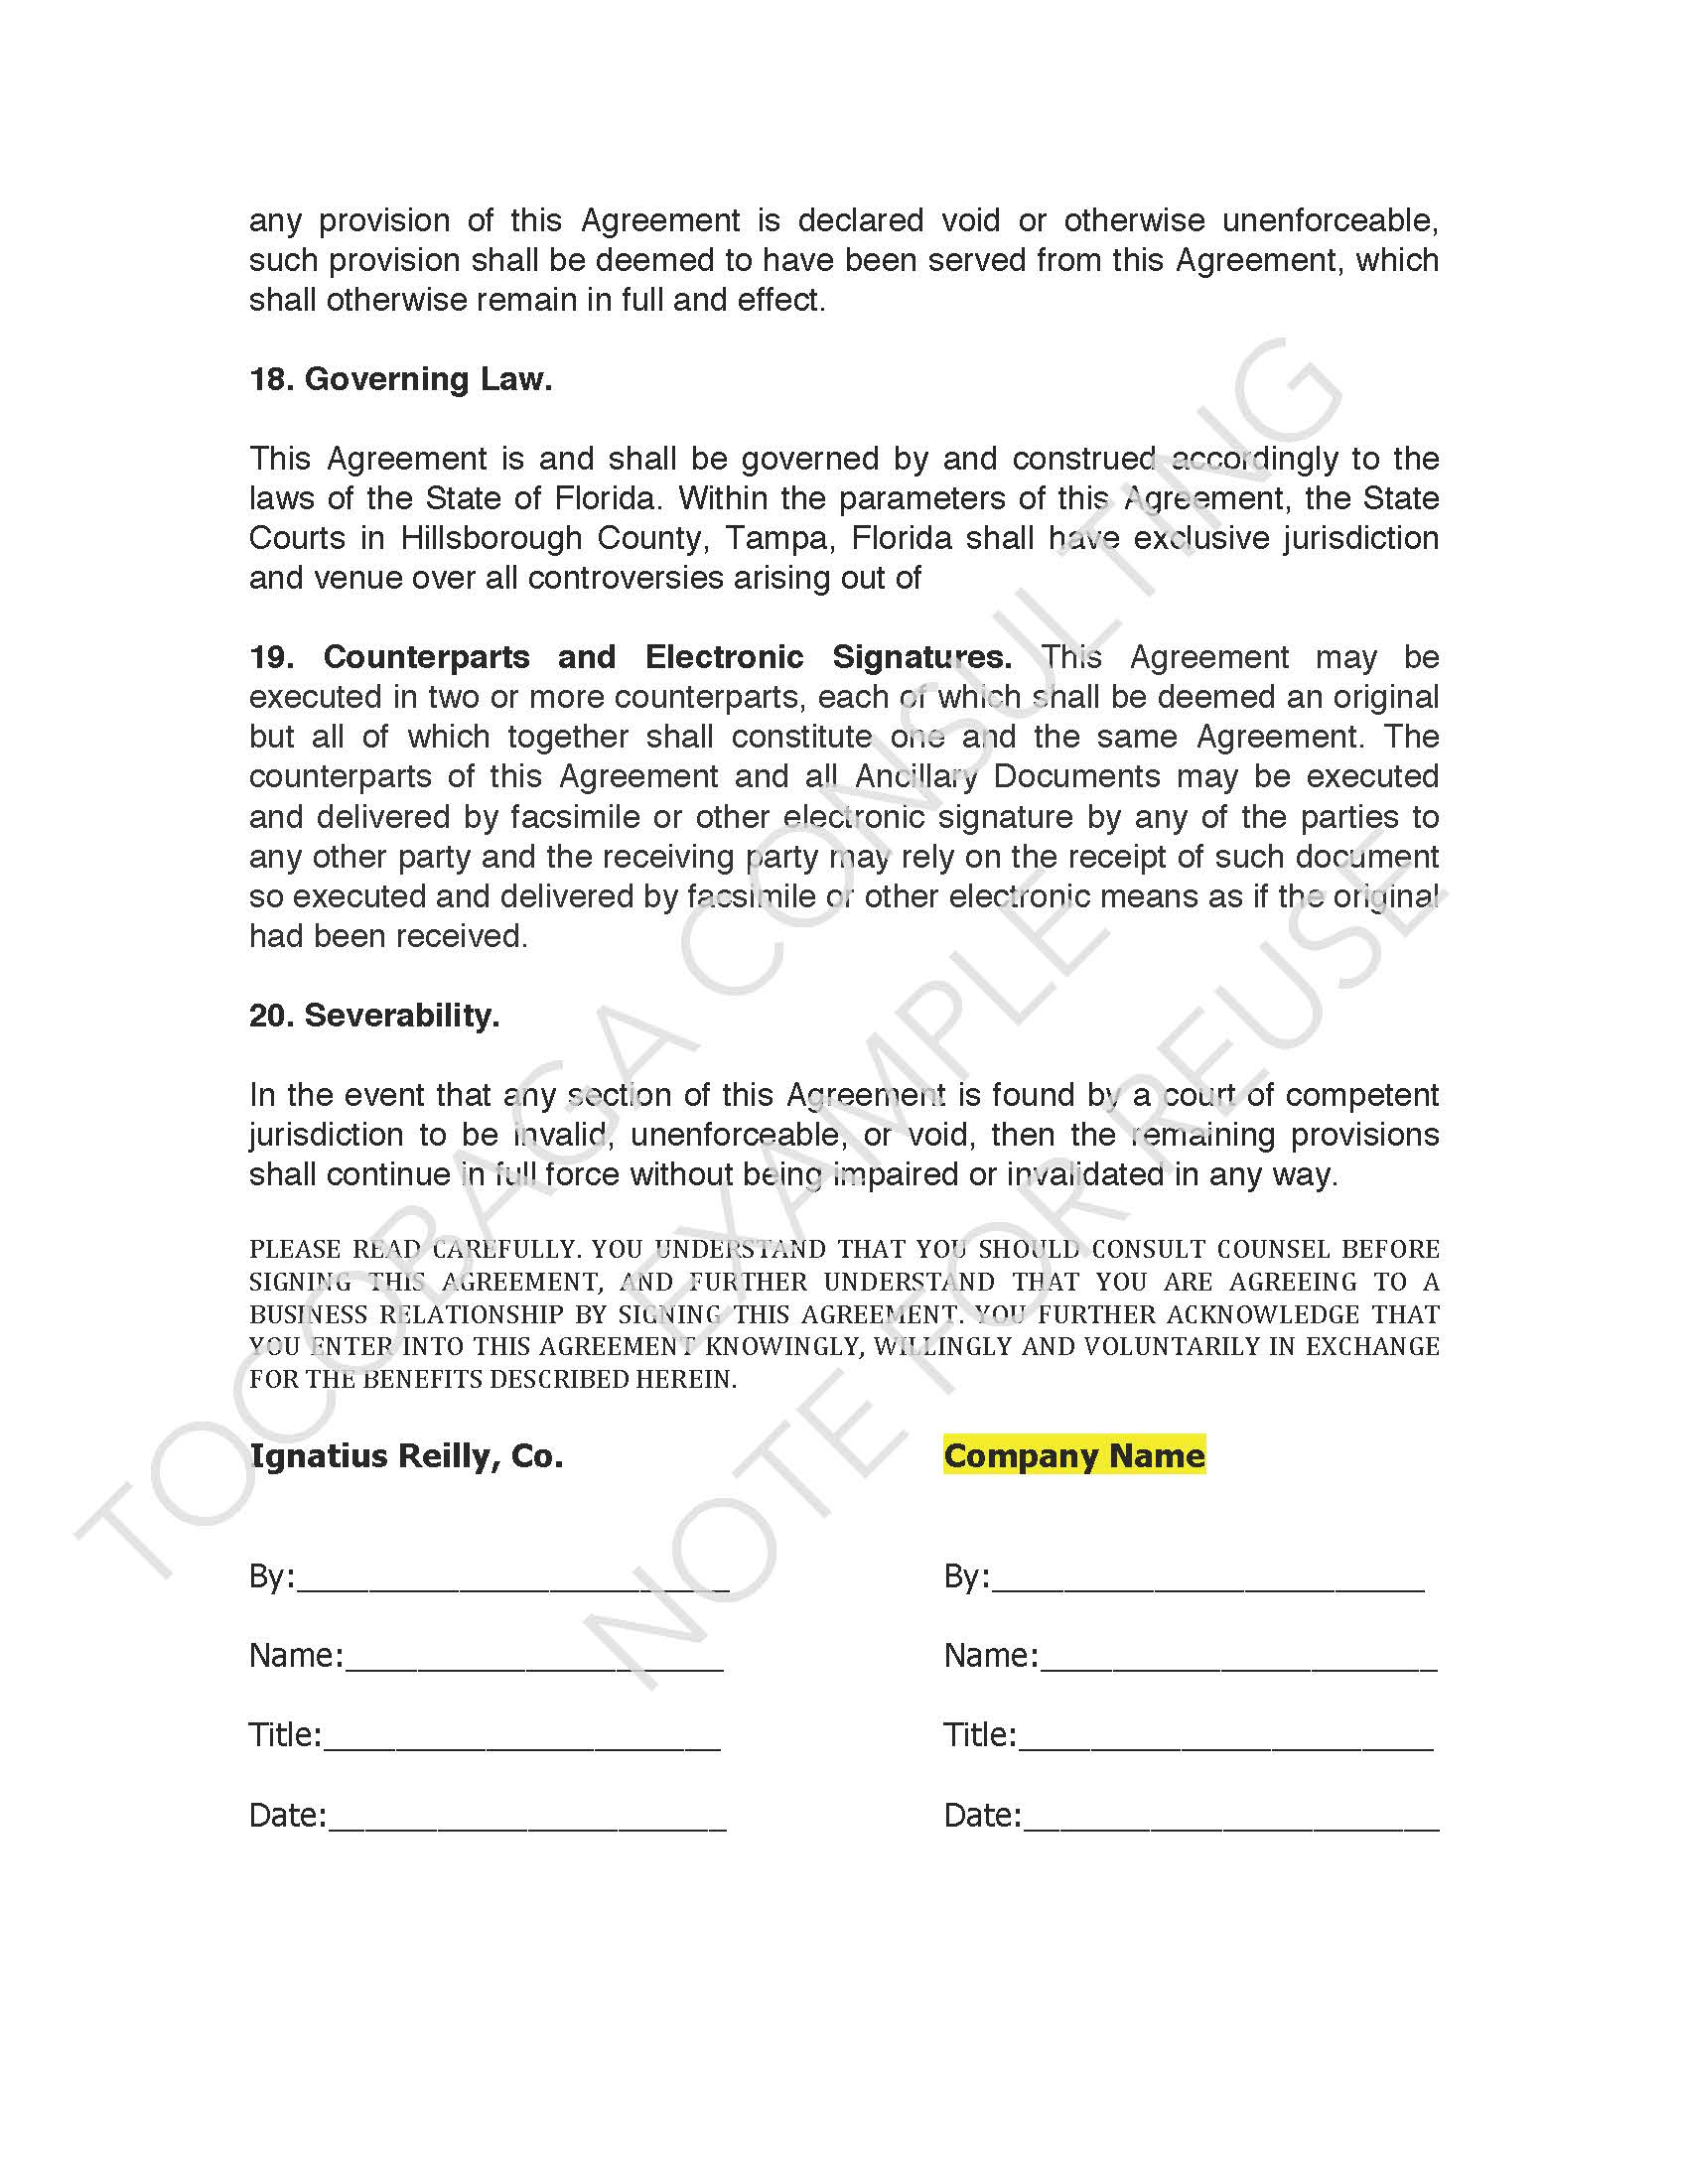 Company Services Agreement EXAMPLE_Page_08.jpg